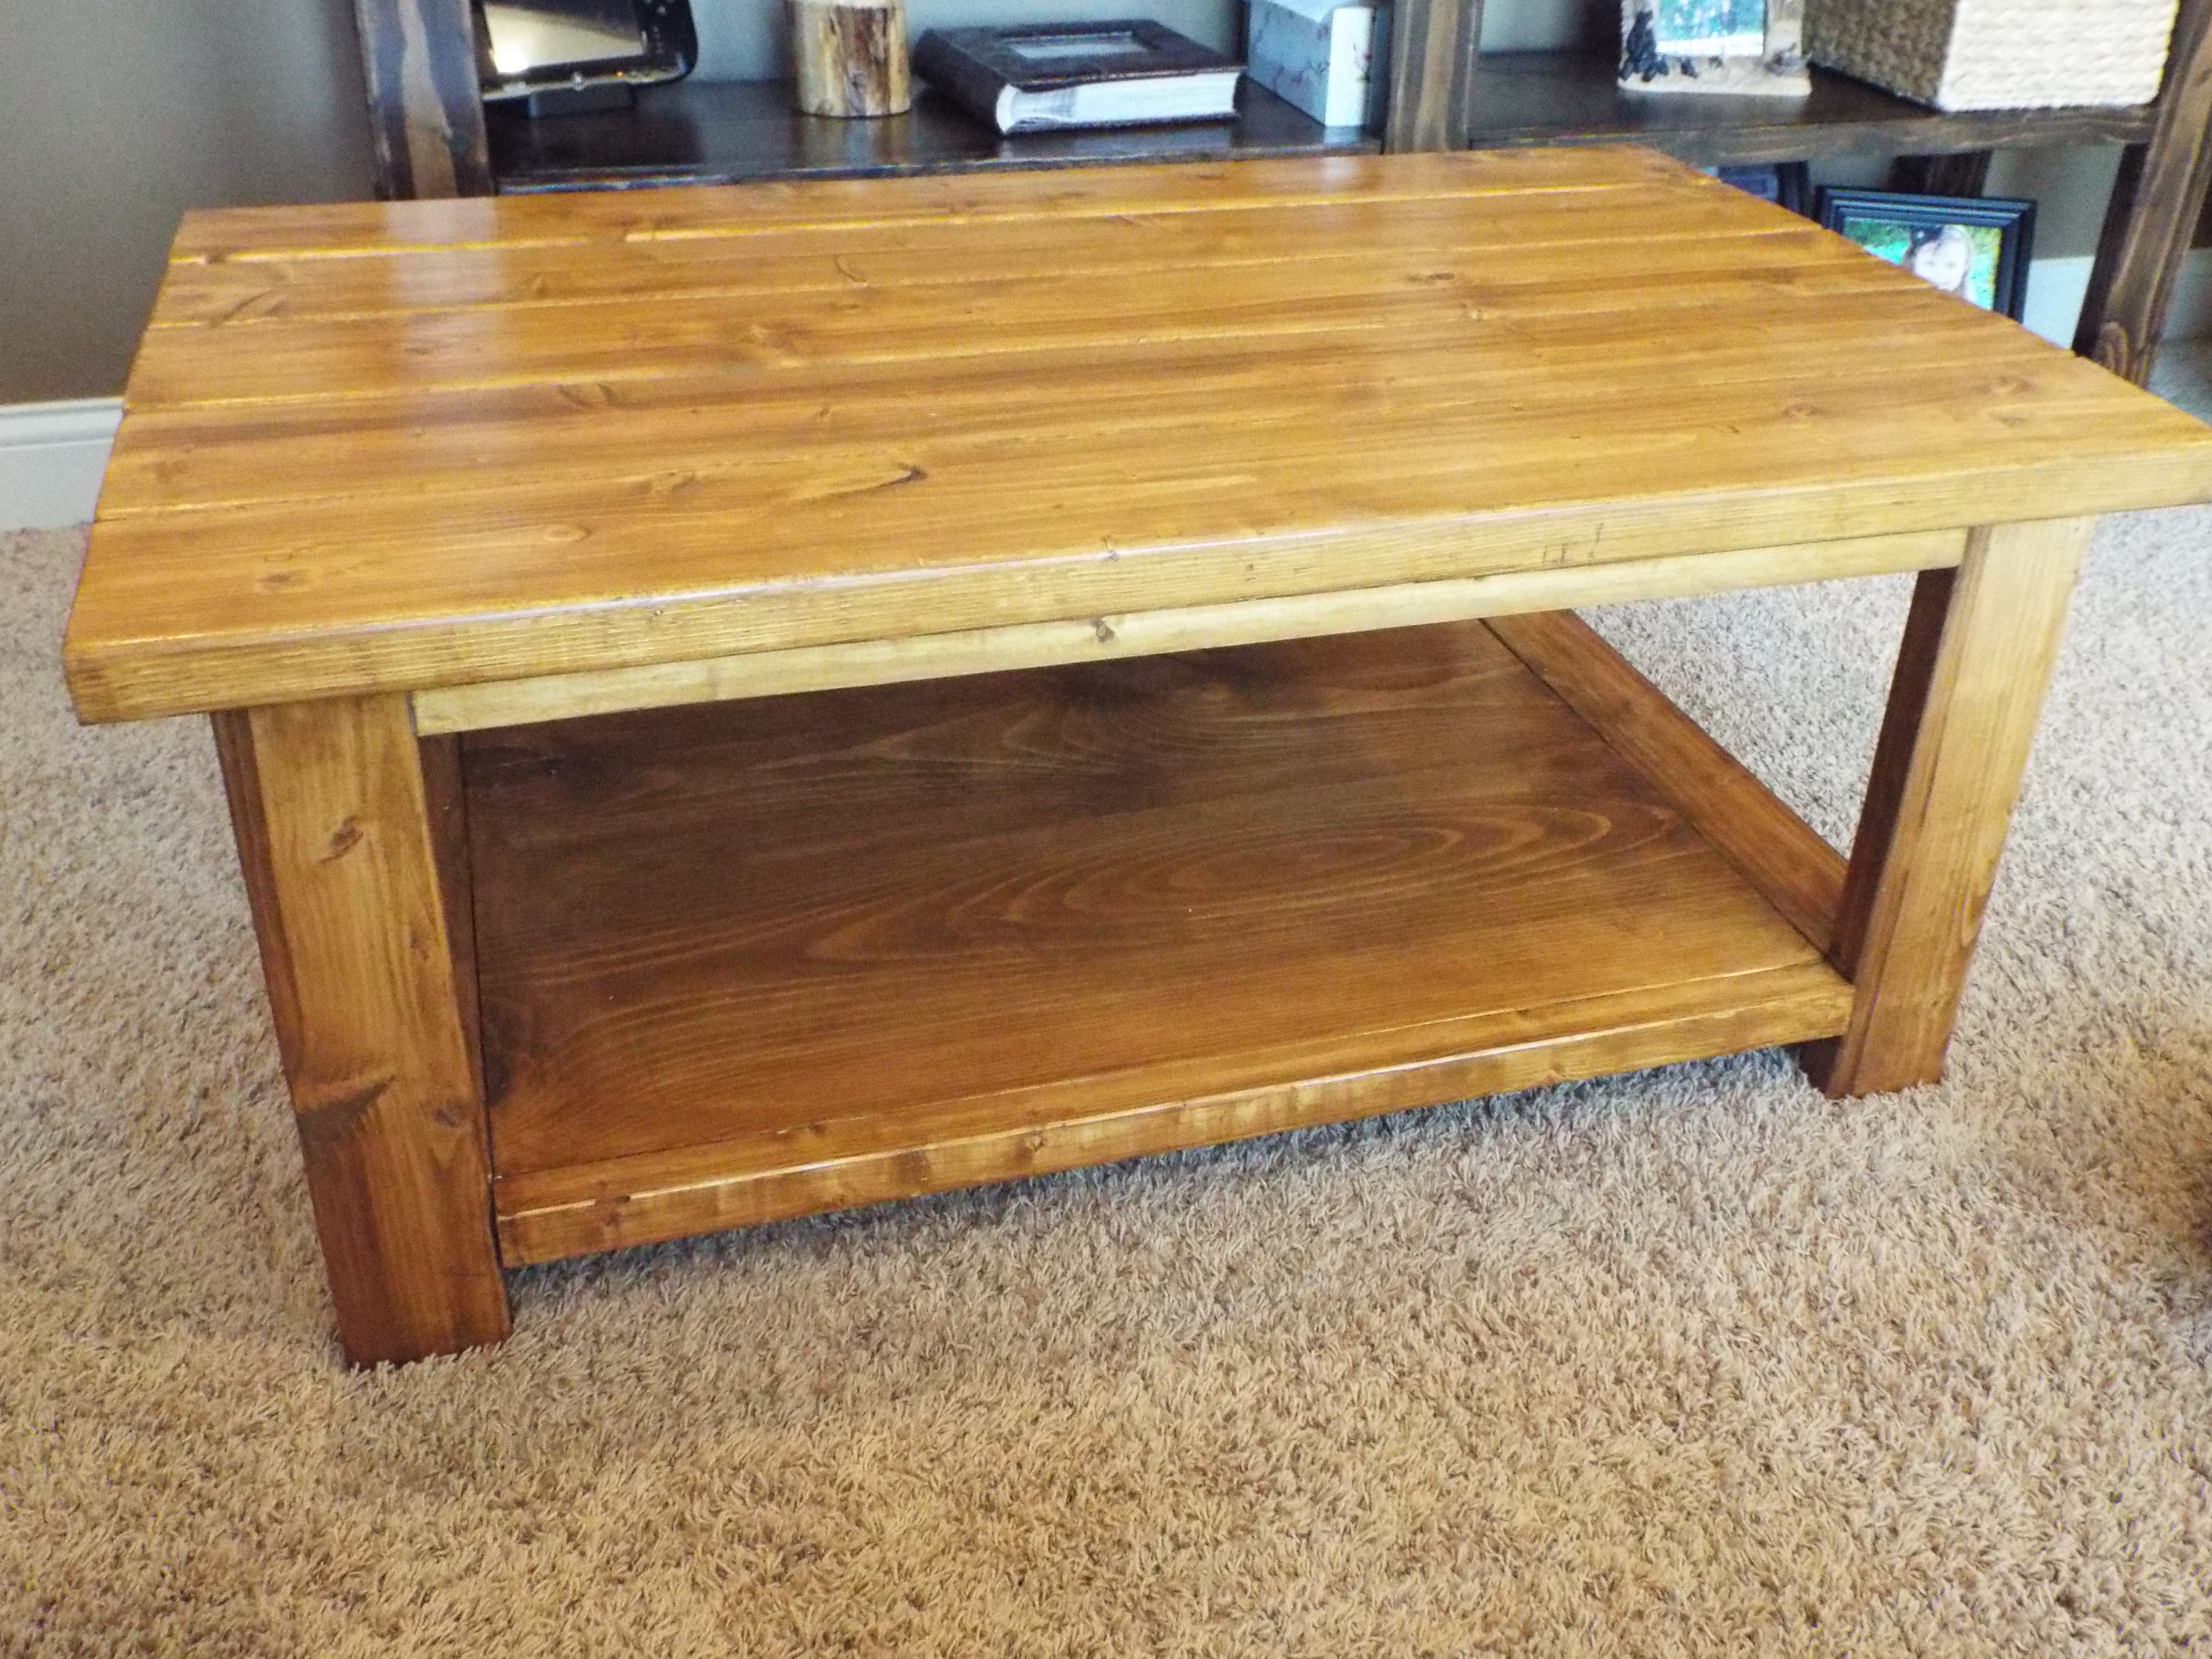 Best ideas about Coffee Table Plans . Save or Pin Pine Now.